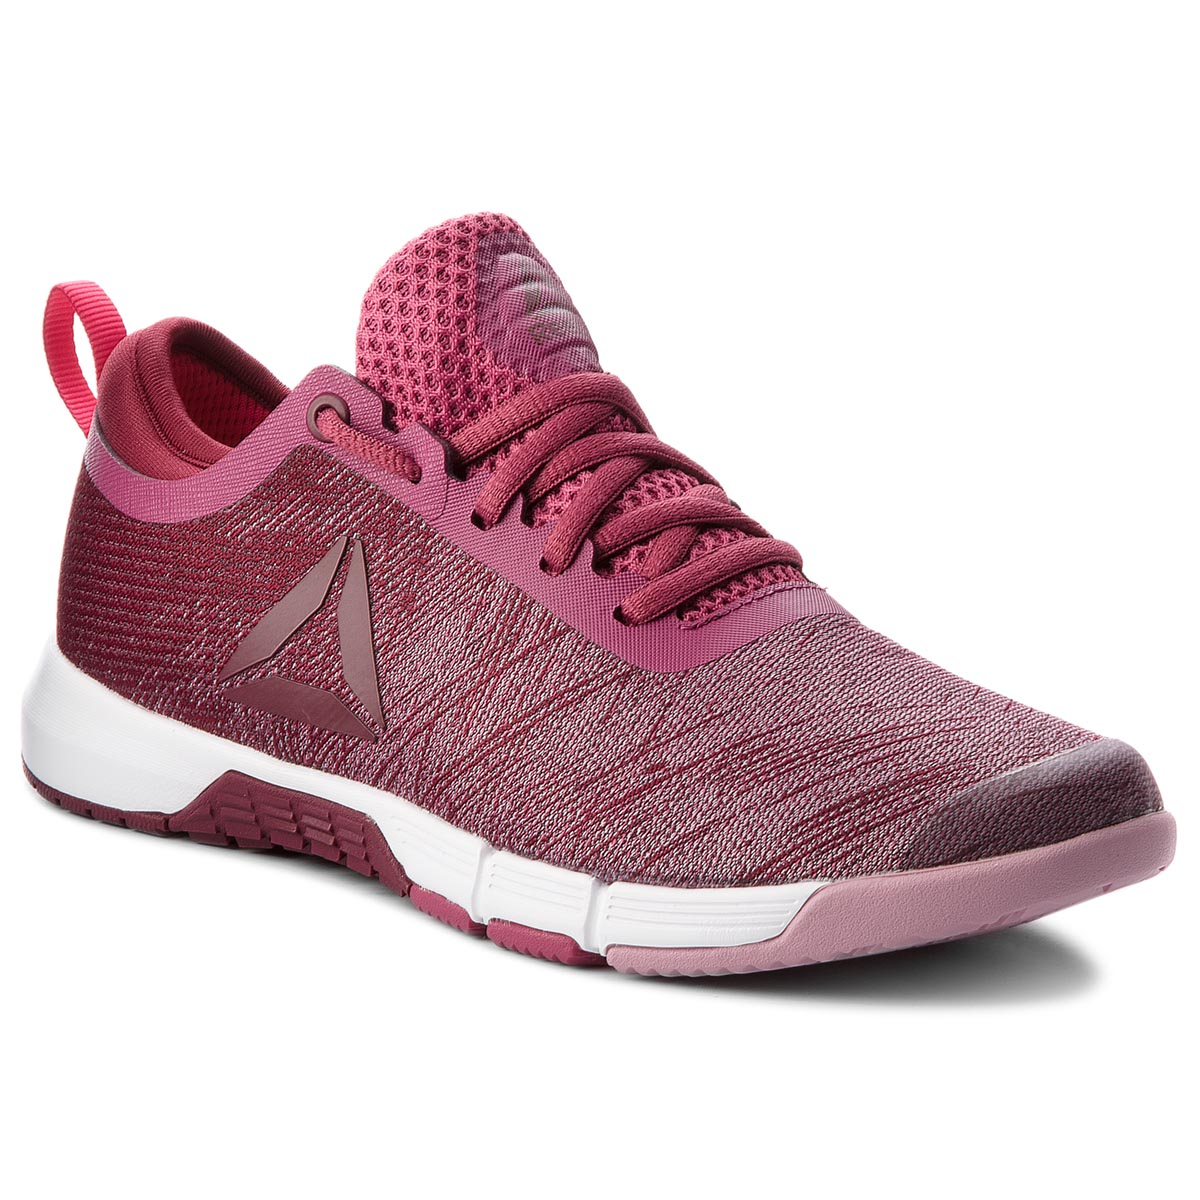 Buty Reebok - Speed Her Tr CN4858  Berry/Wine/Lilac/Wht/Pink